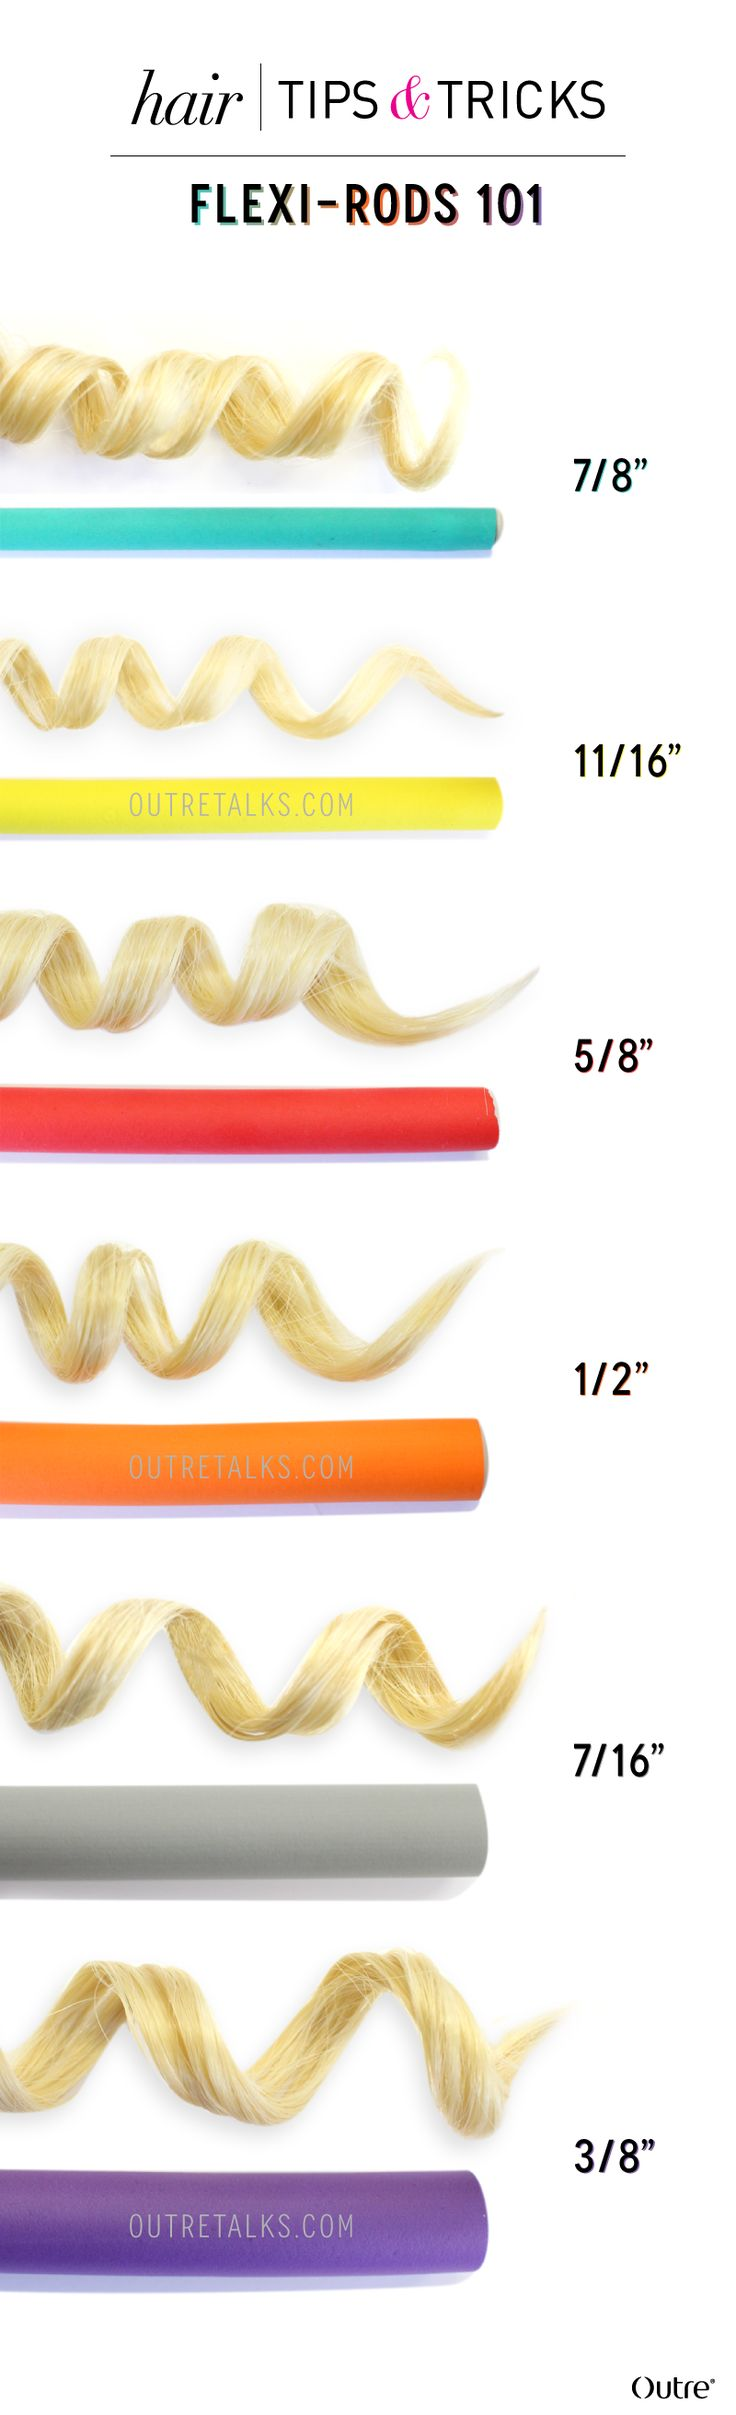 how to use flexi rods cheat sheet